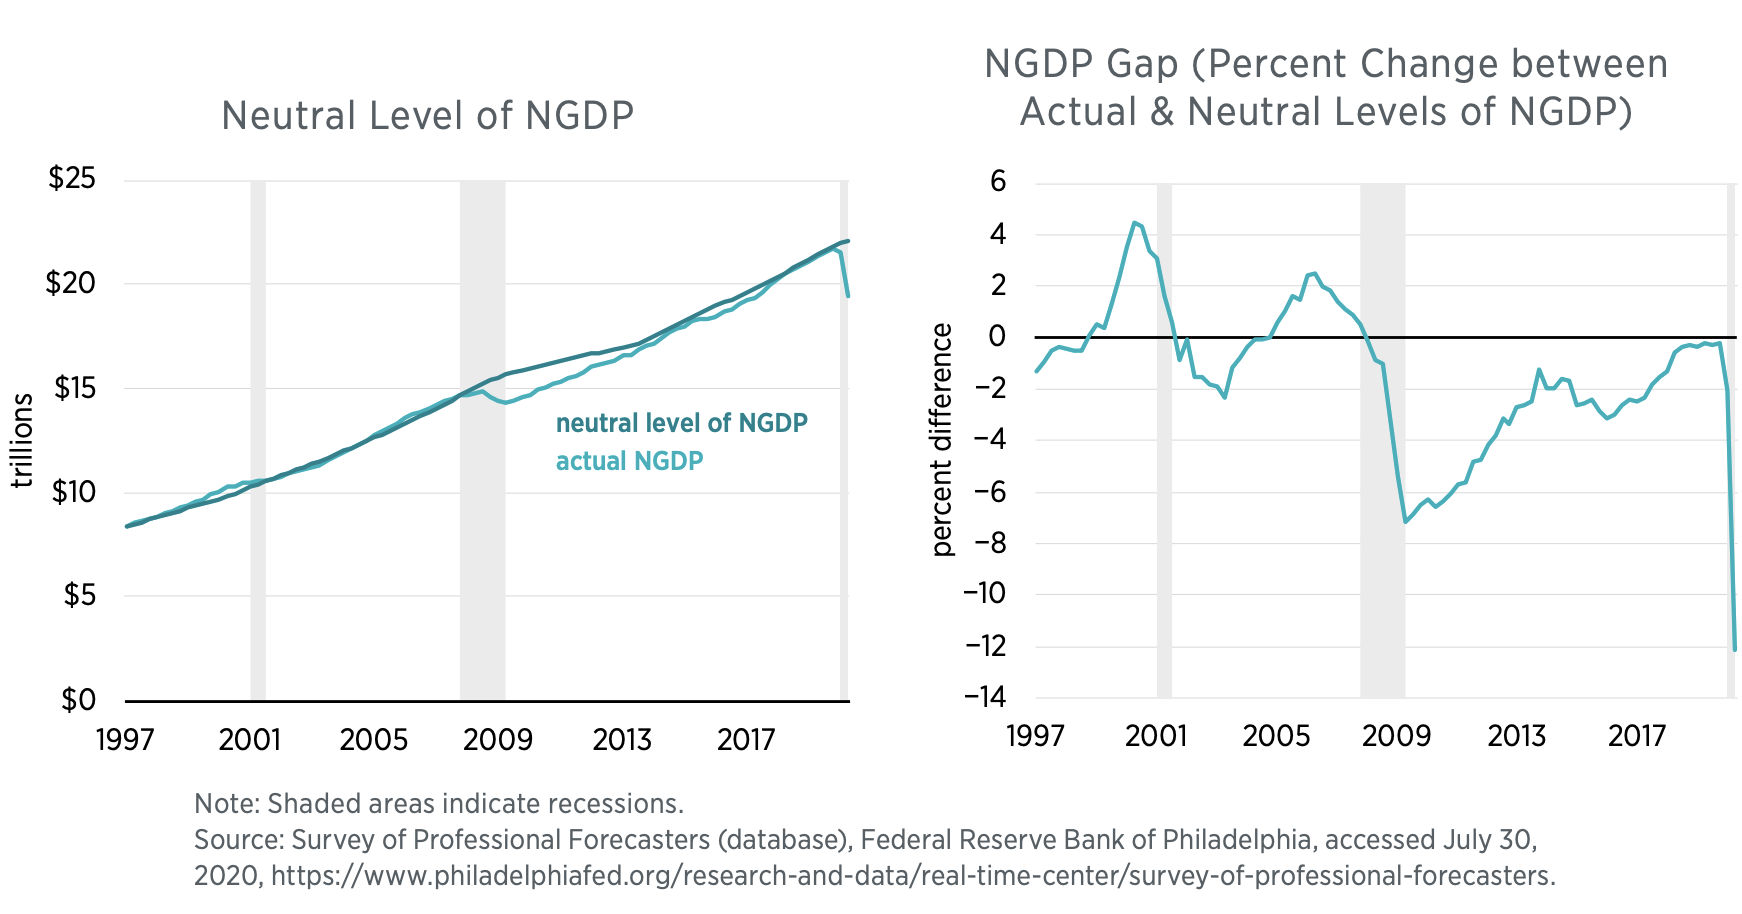 Neutral Level of NGDP and NGDP Gap (Percent Change between Actual & Neutral Levels of NGDP)